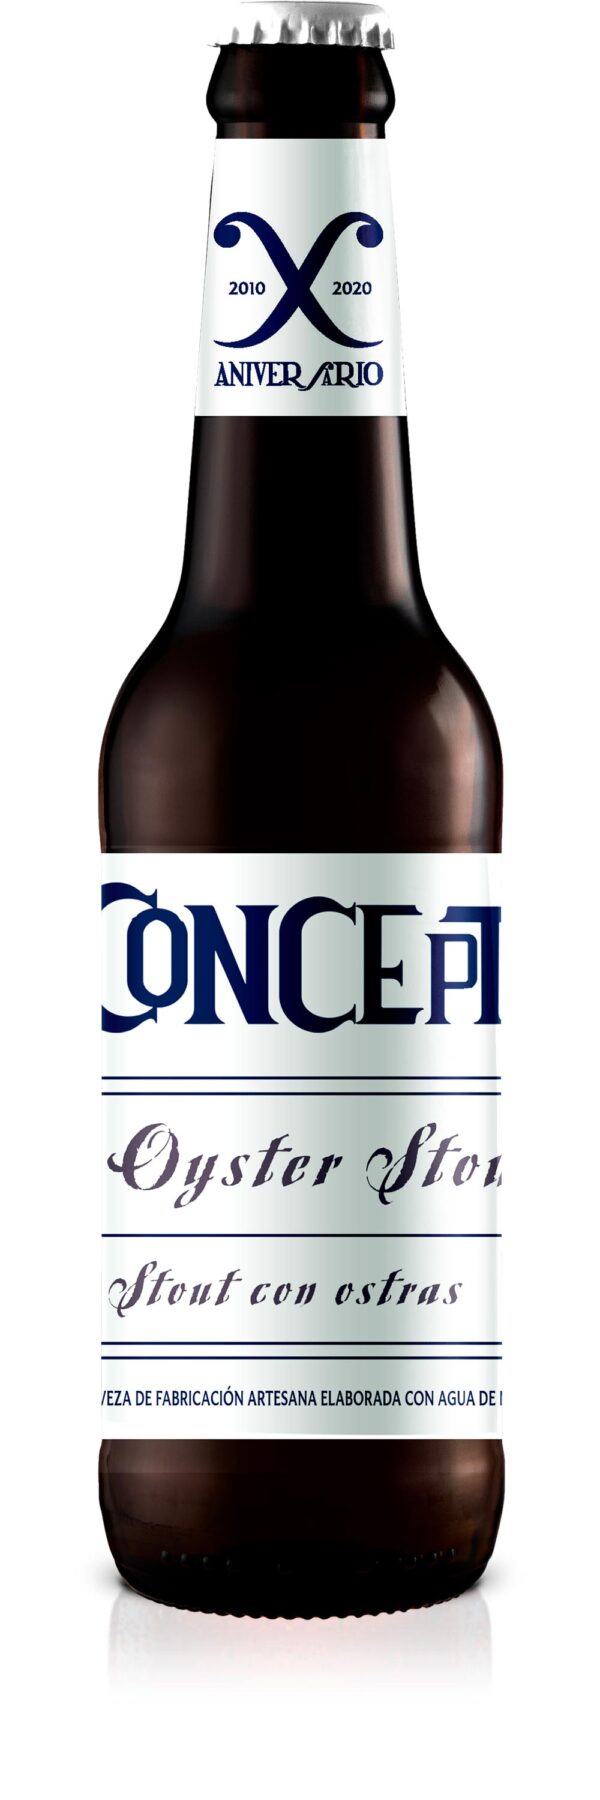 Oyster Stout Gama Concept by La Cibeles